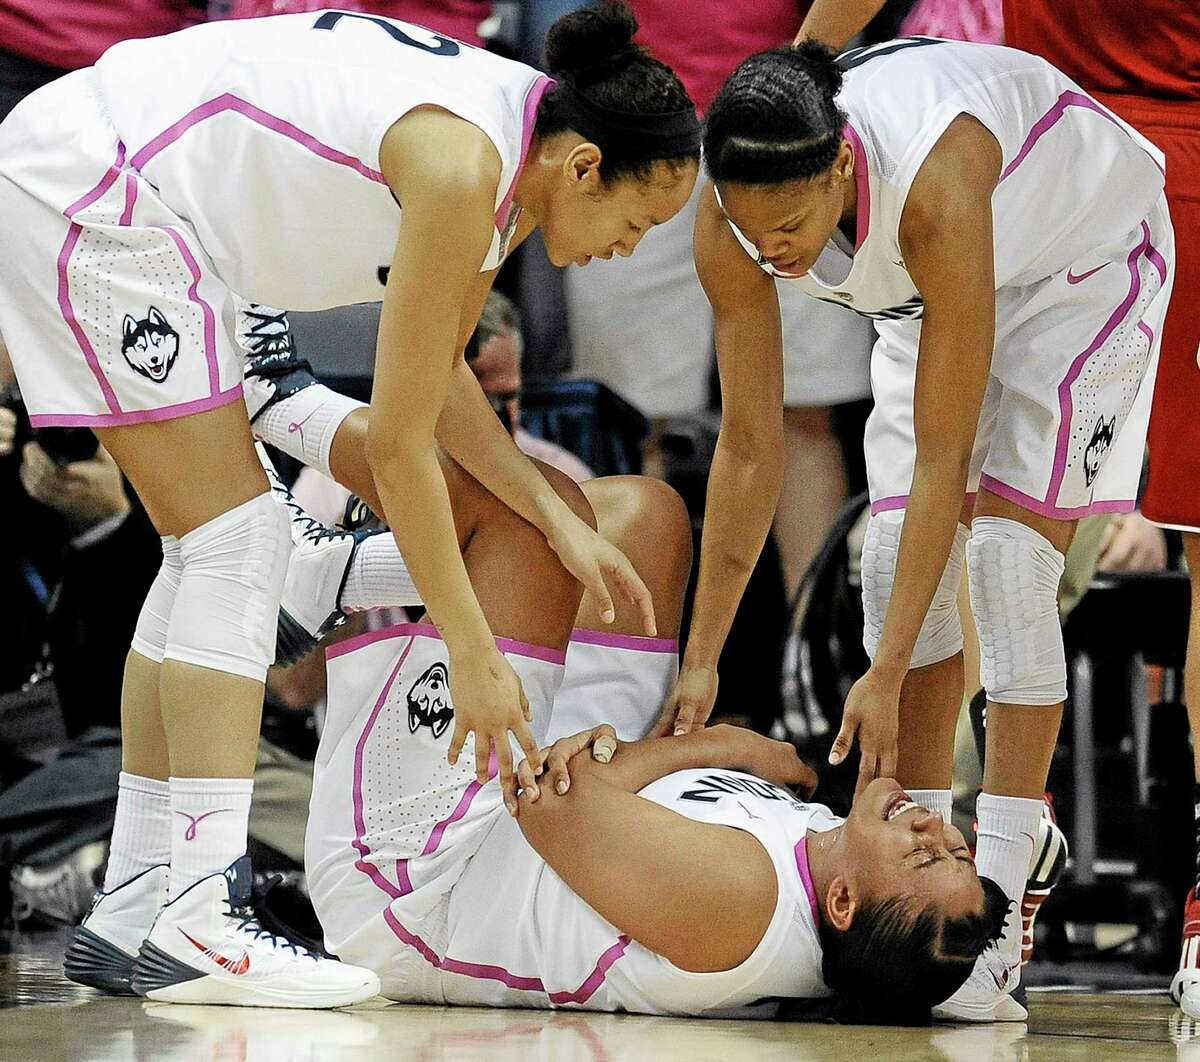 Losing Kaleena Mosqueda-Lewis, shown holding her arm after a hard fall to the court, to an illness is causing lineup changes for the UConn women's basketball team.